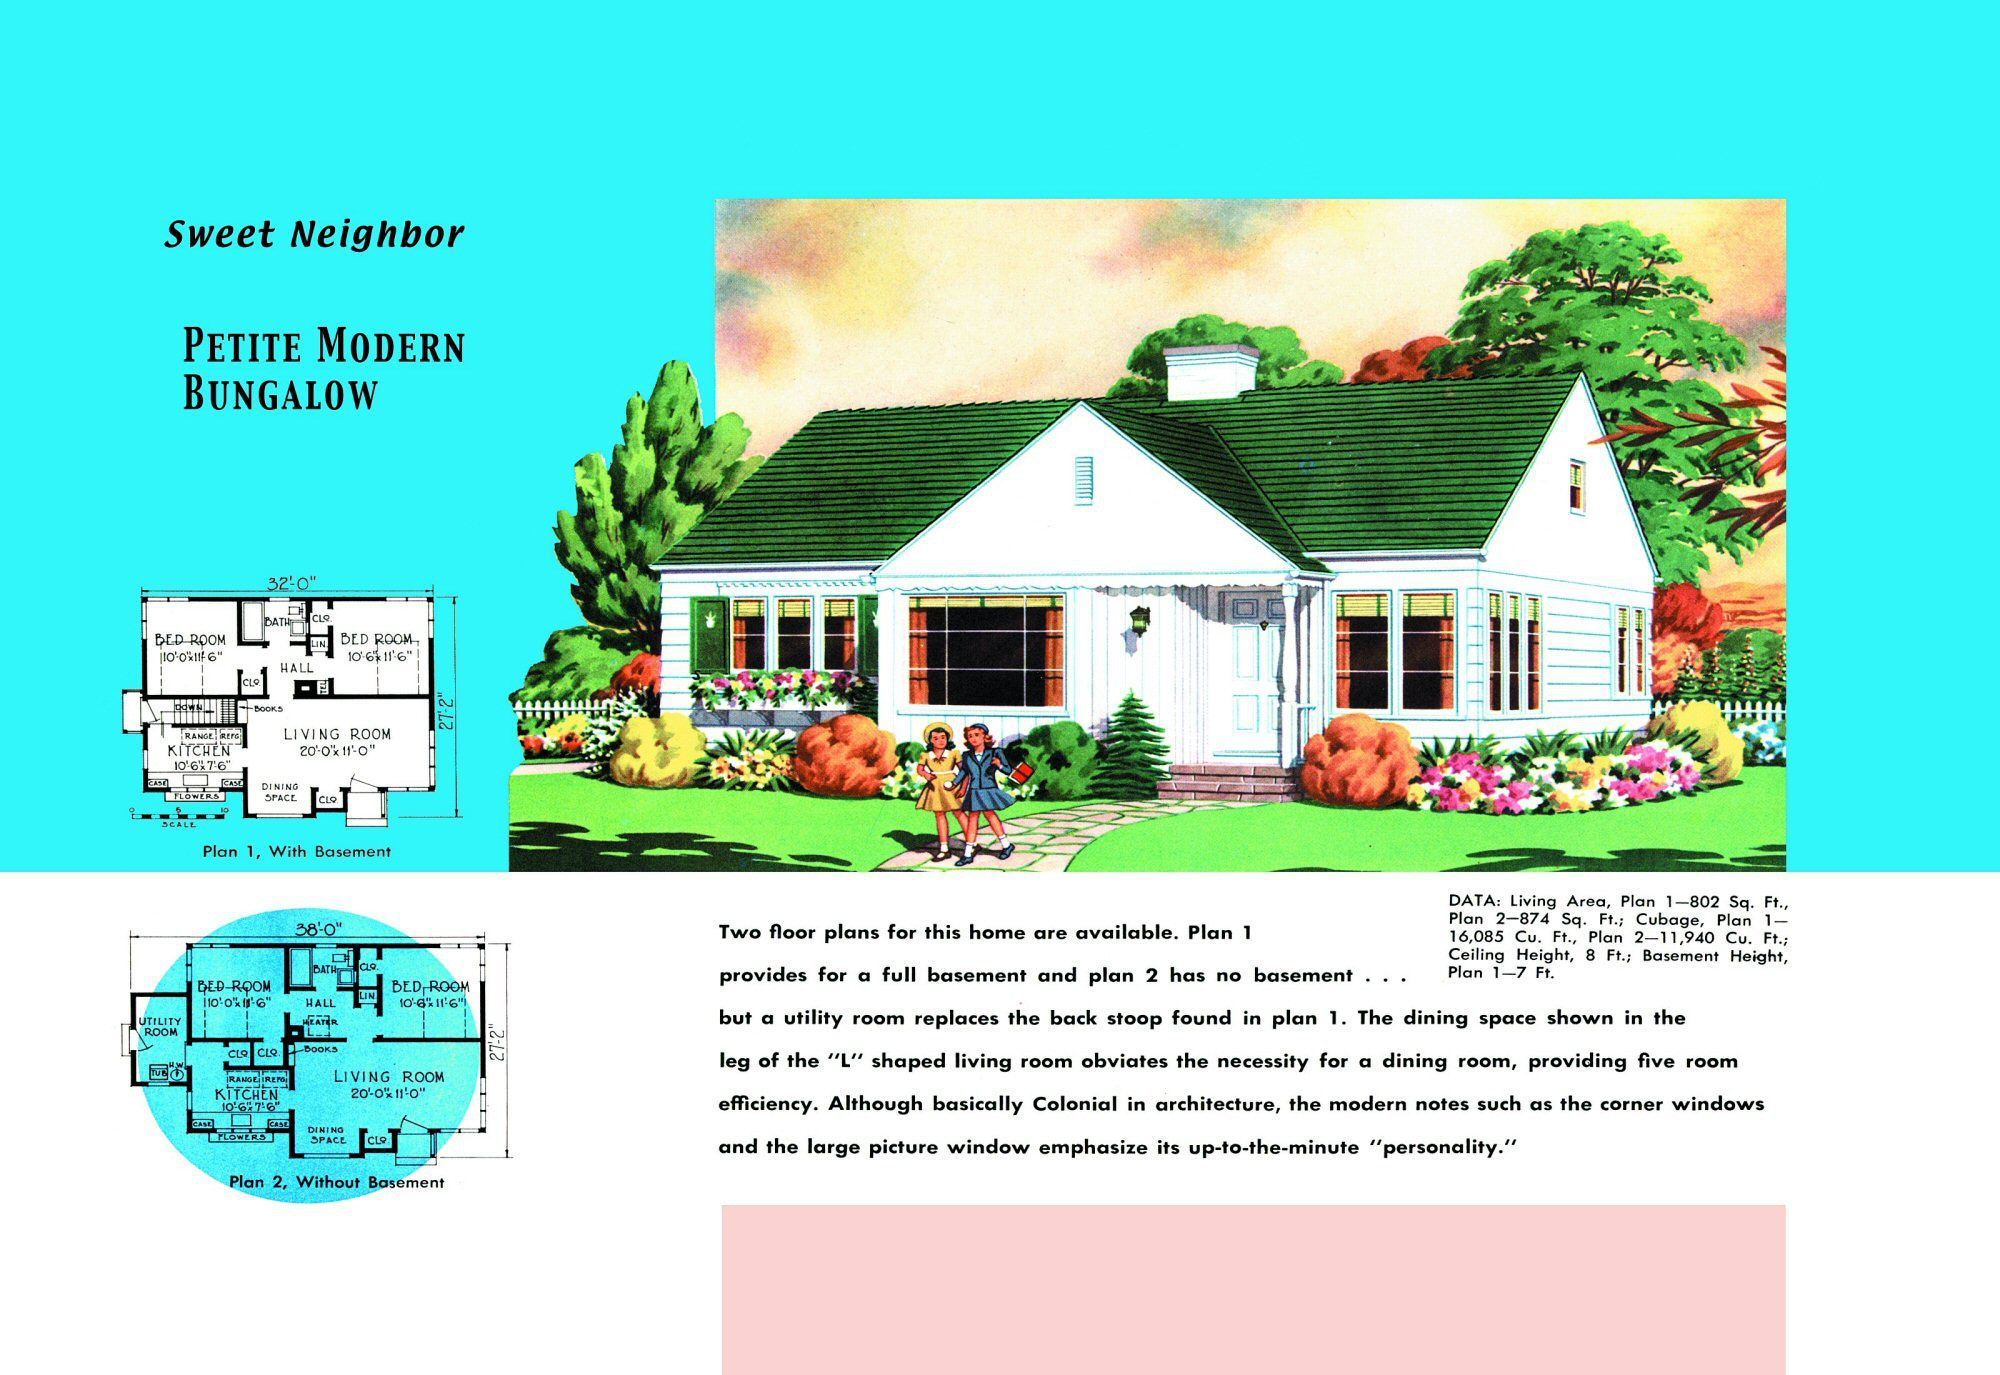 1940s And 50s House Plans Sweet Neighbor Houses And